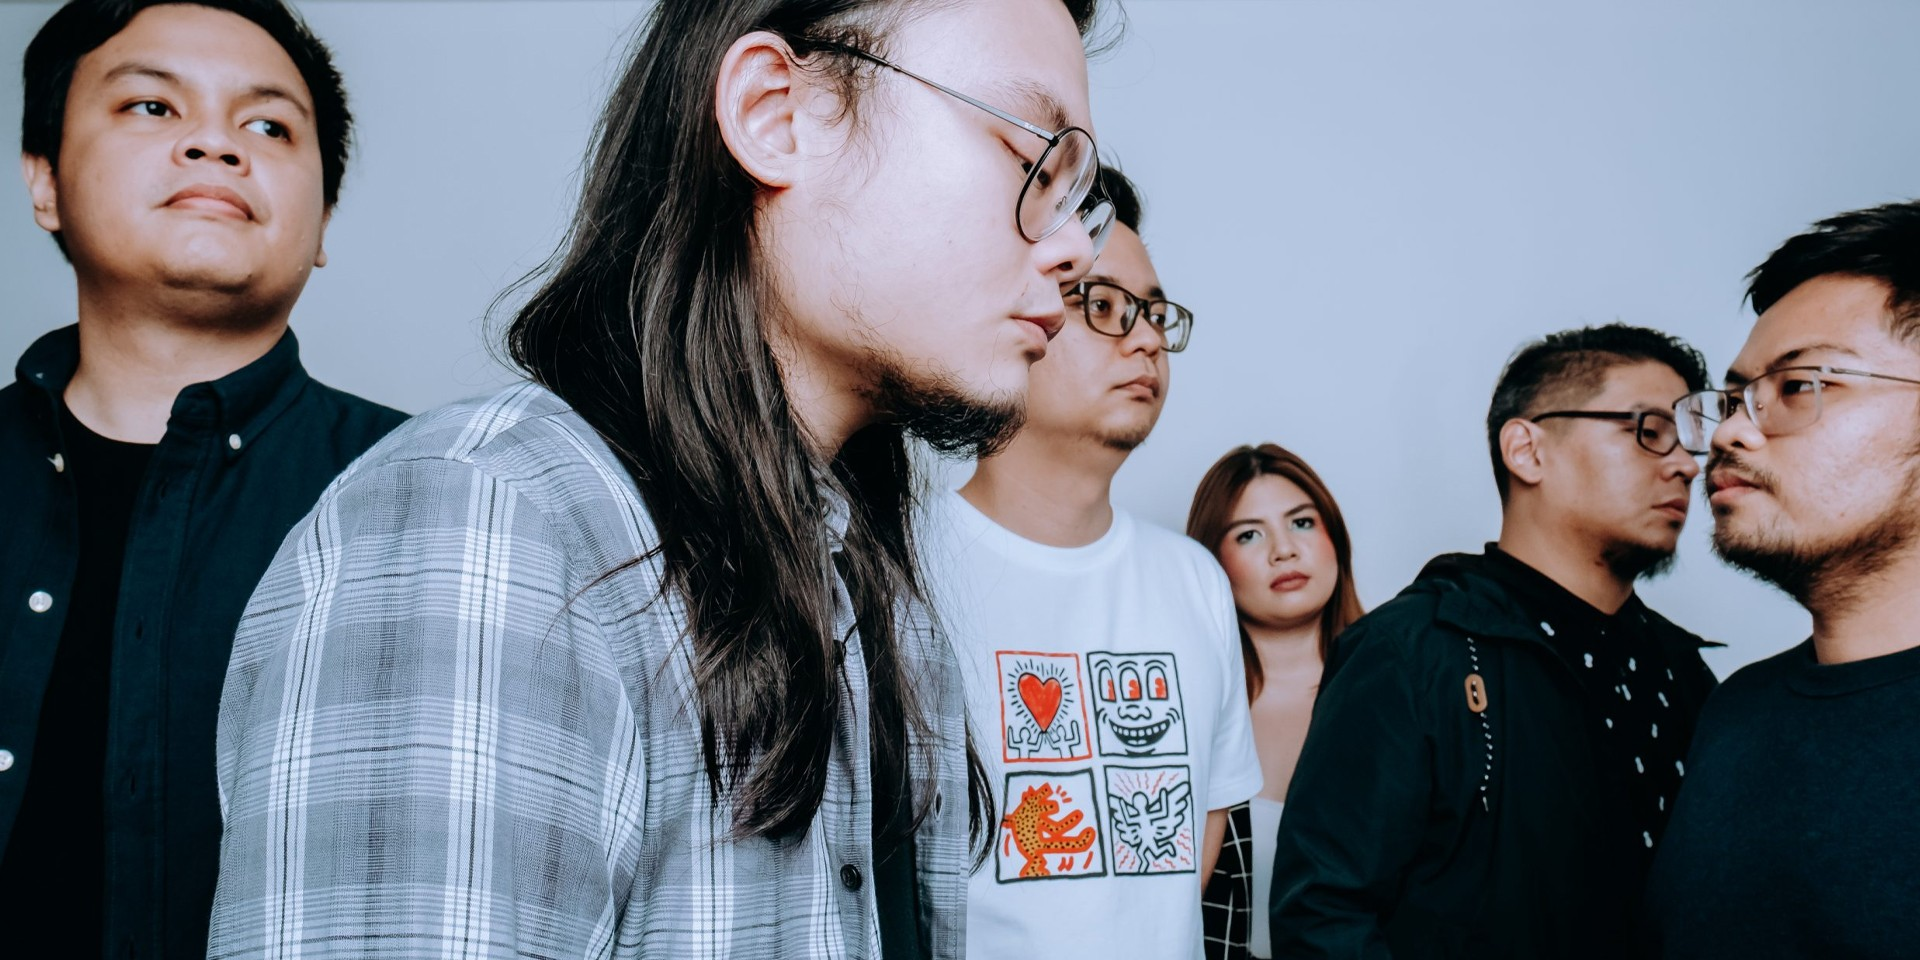 Autotelic deal with regret in new single 'Iwan' – listen